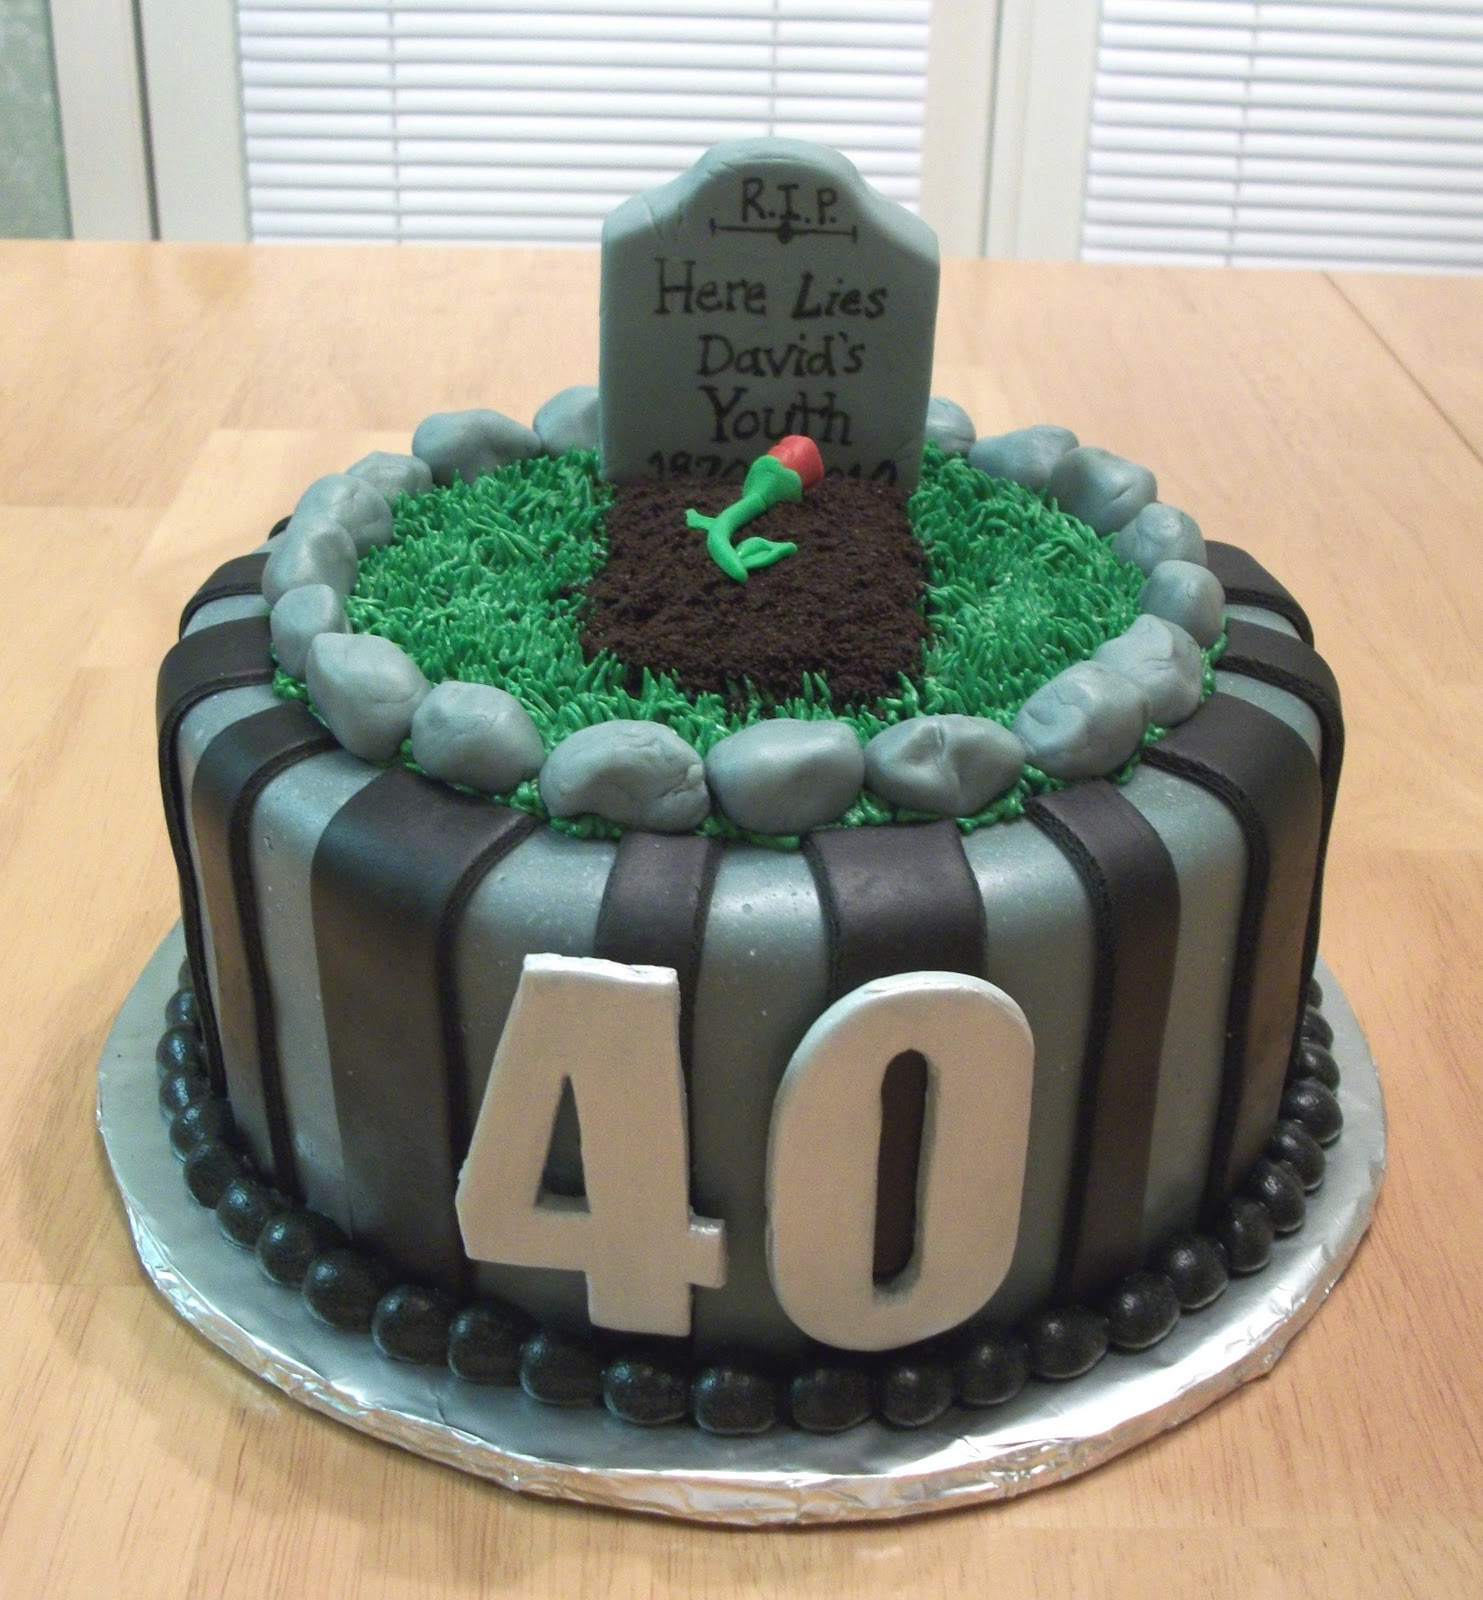 Bellissimo specialty cakes 40th birthday cake for 40th birthday cake decoration